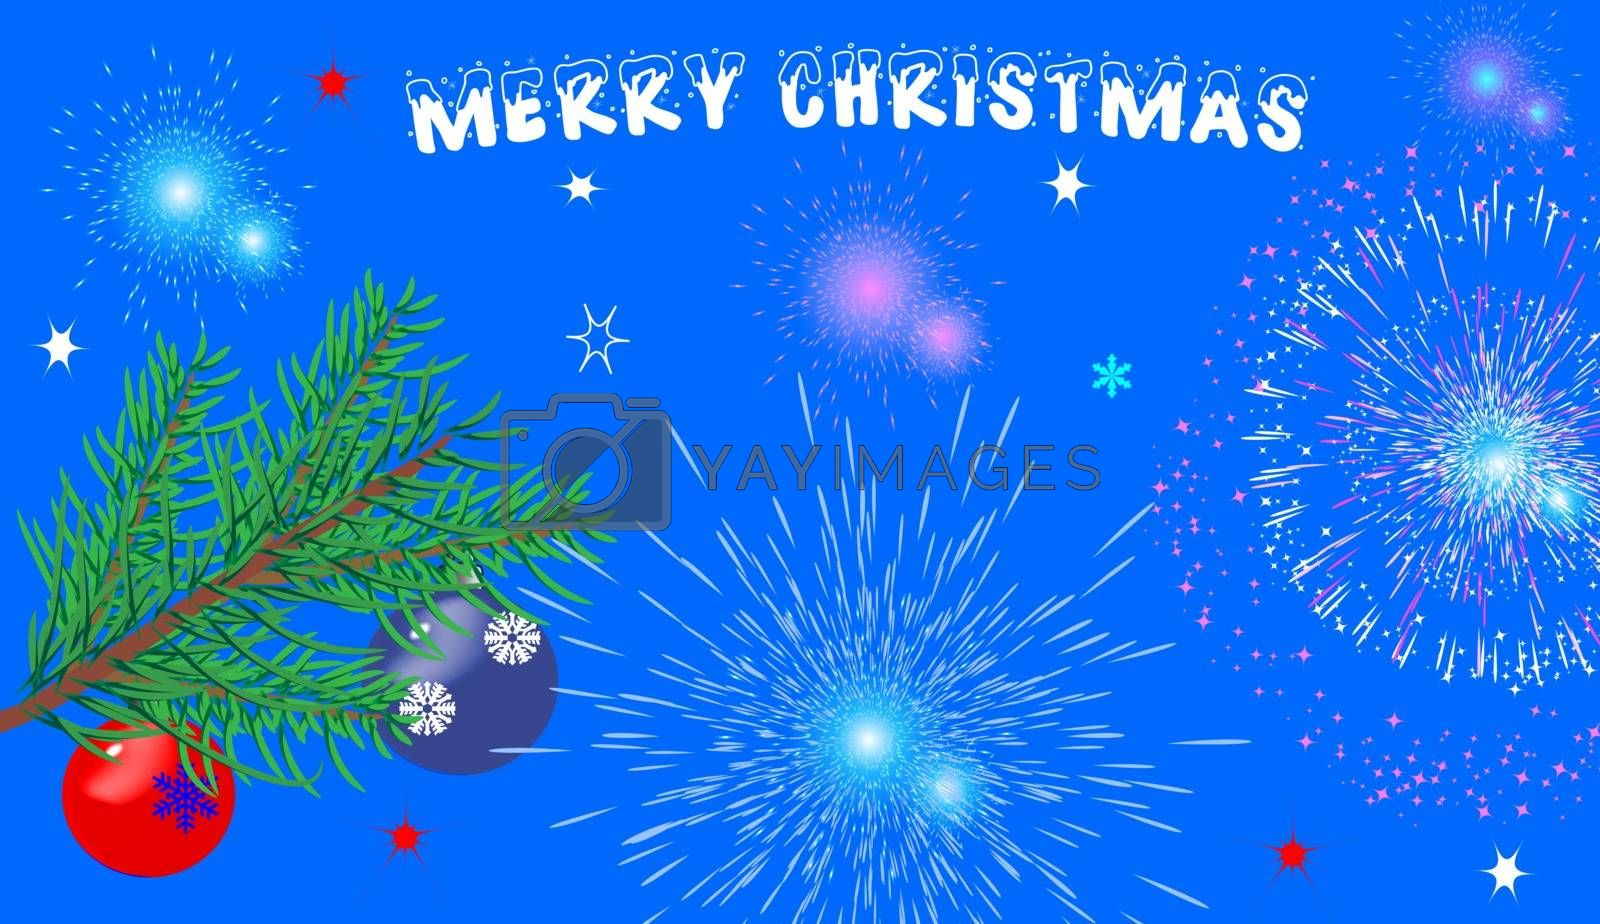 Christmas blue background with glasses, fireworks and a Christmas tree. With the greeting text